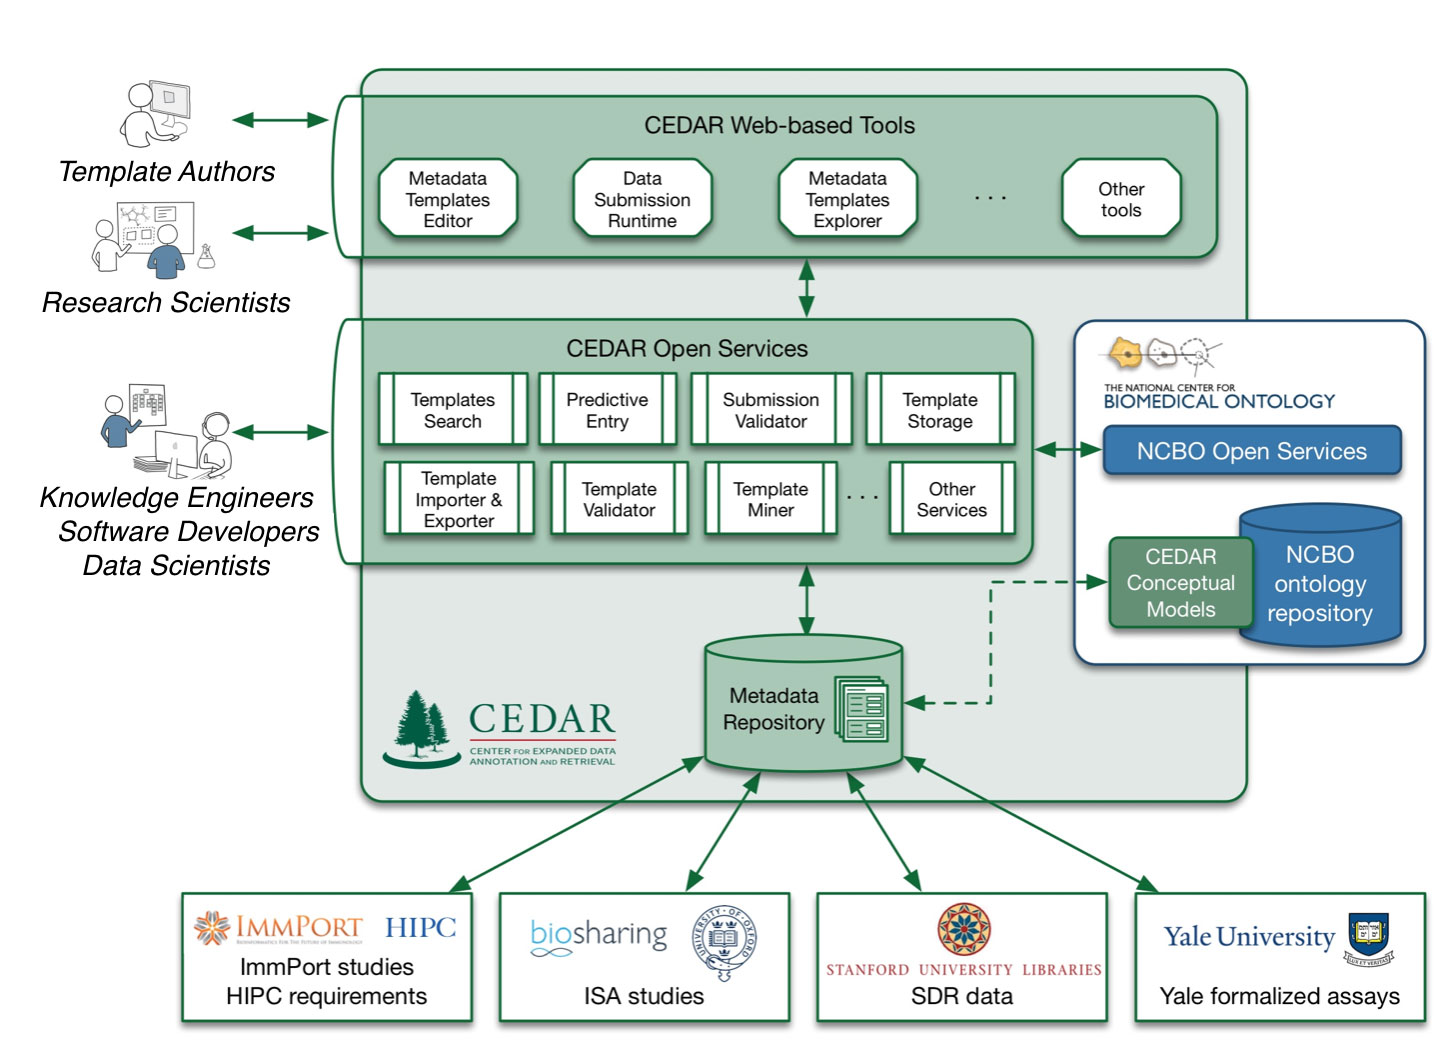 Diagram showing the interplay between CEDAR users, systems, metadata, and supporting organizations